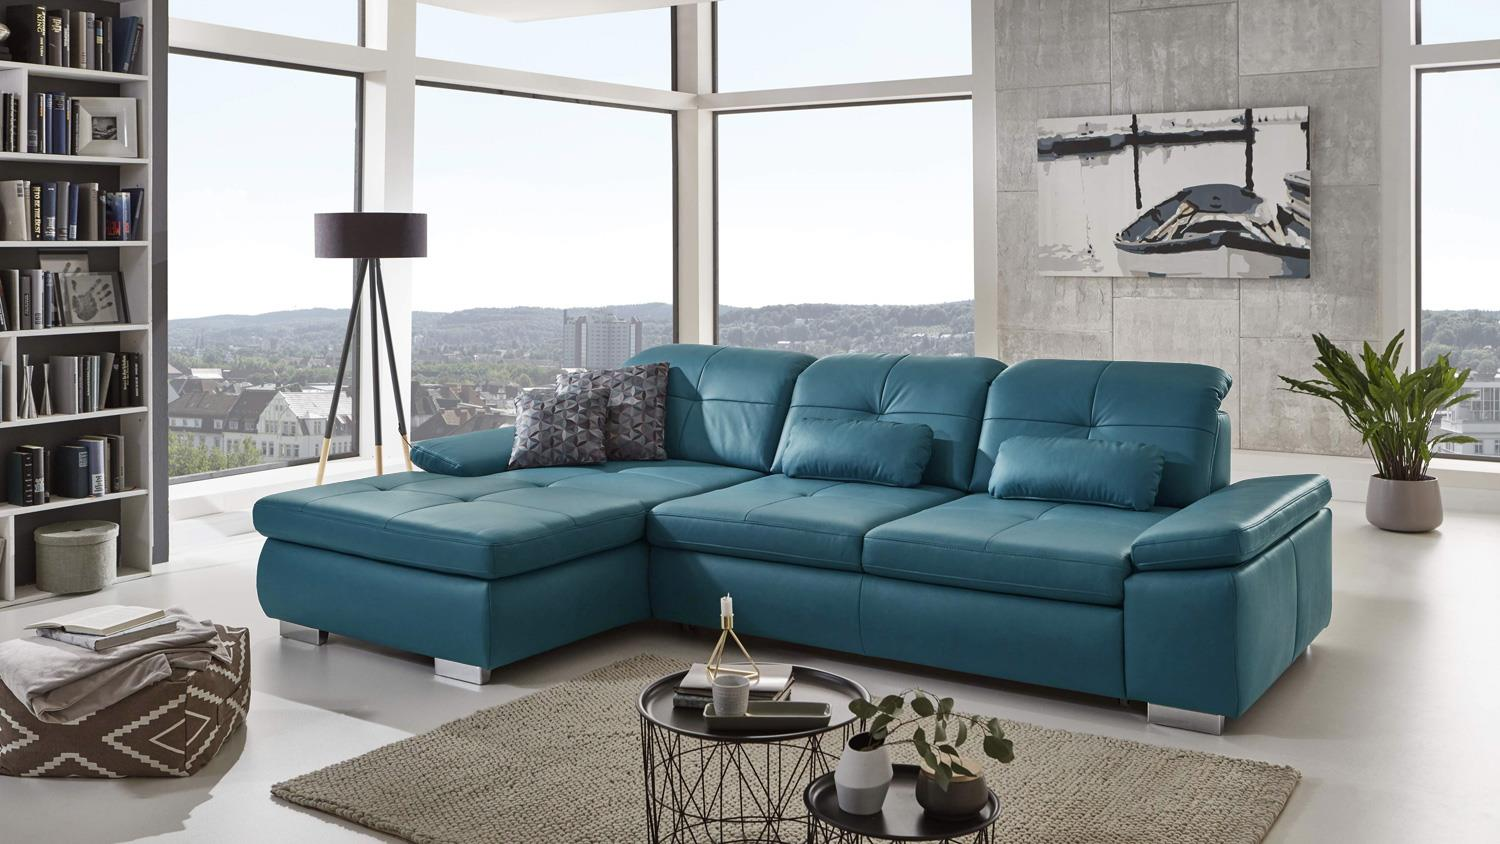 ecksofa active l form bezug leder ocean blau mit sitztiefenverstellung. Black Bedroom Furniture Sets. Home Design Ideas